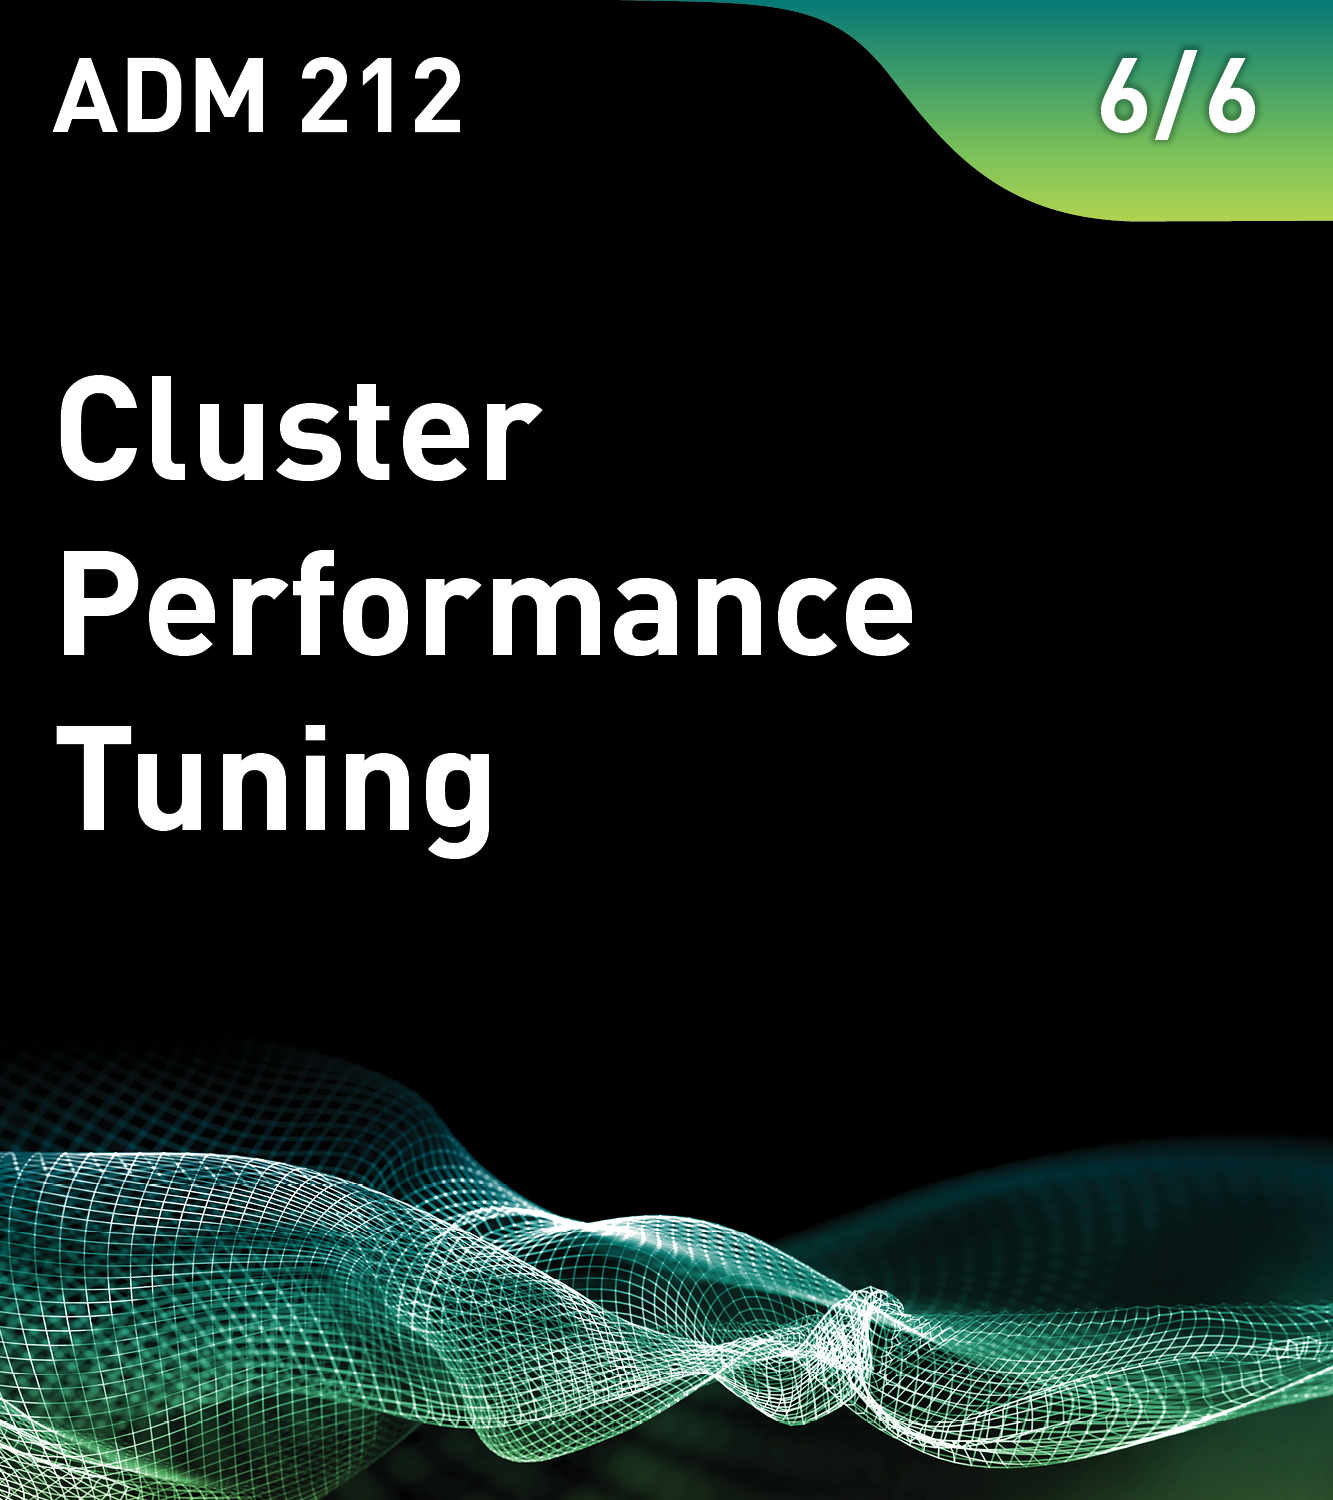 ADM 212 - Cluster Performance Tuning